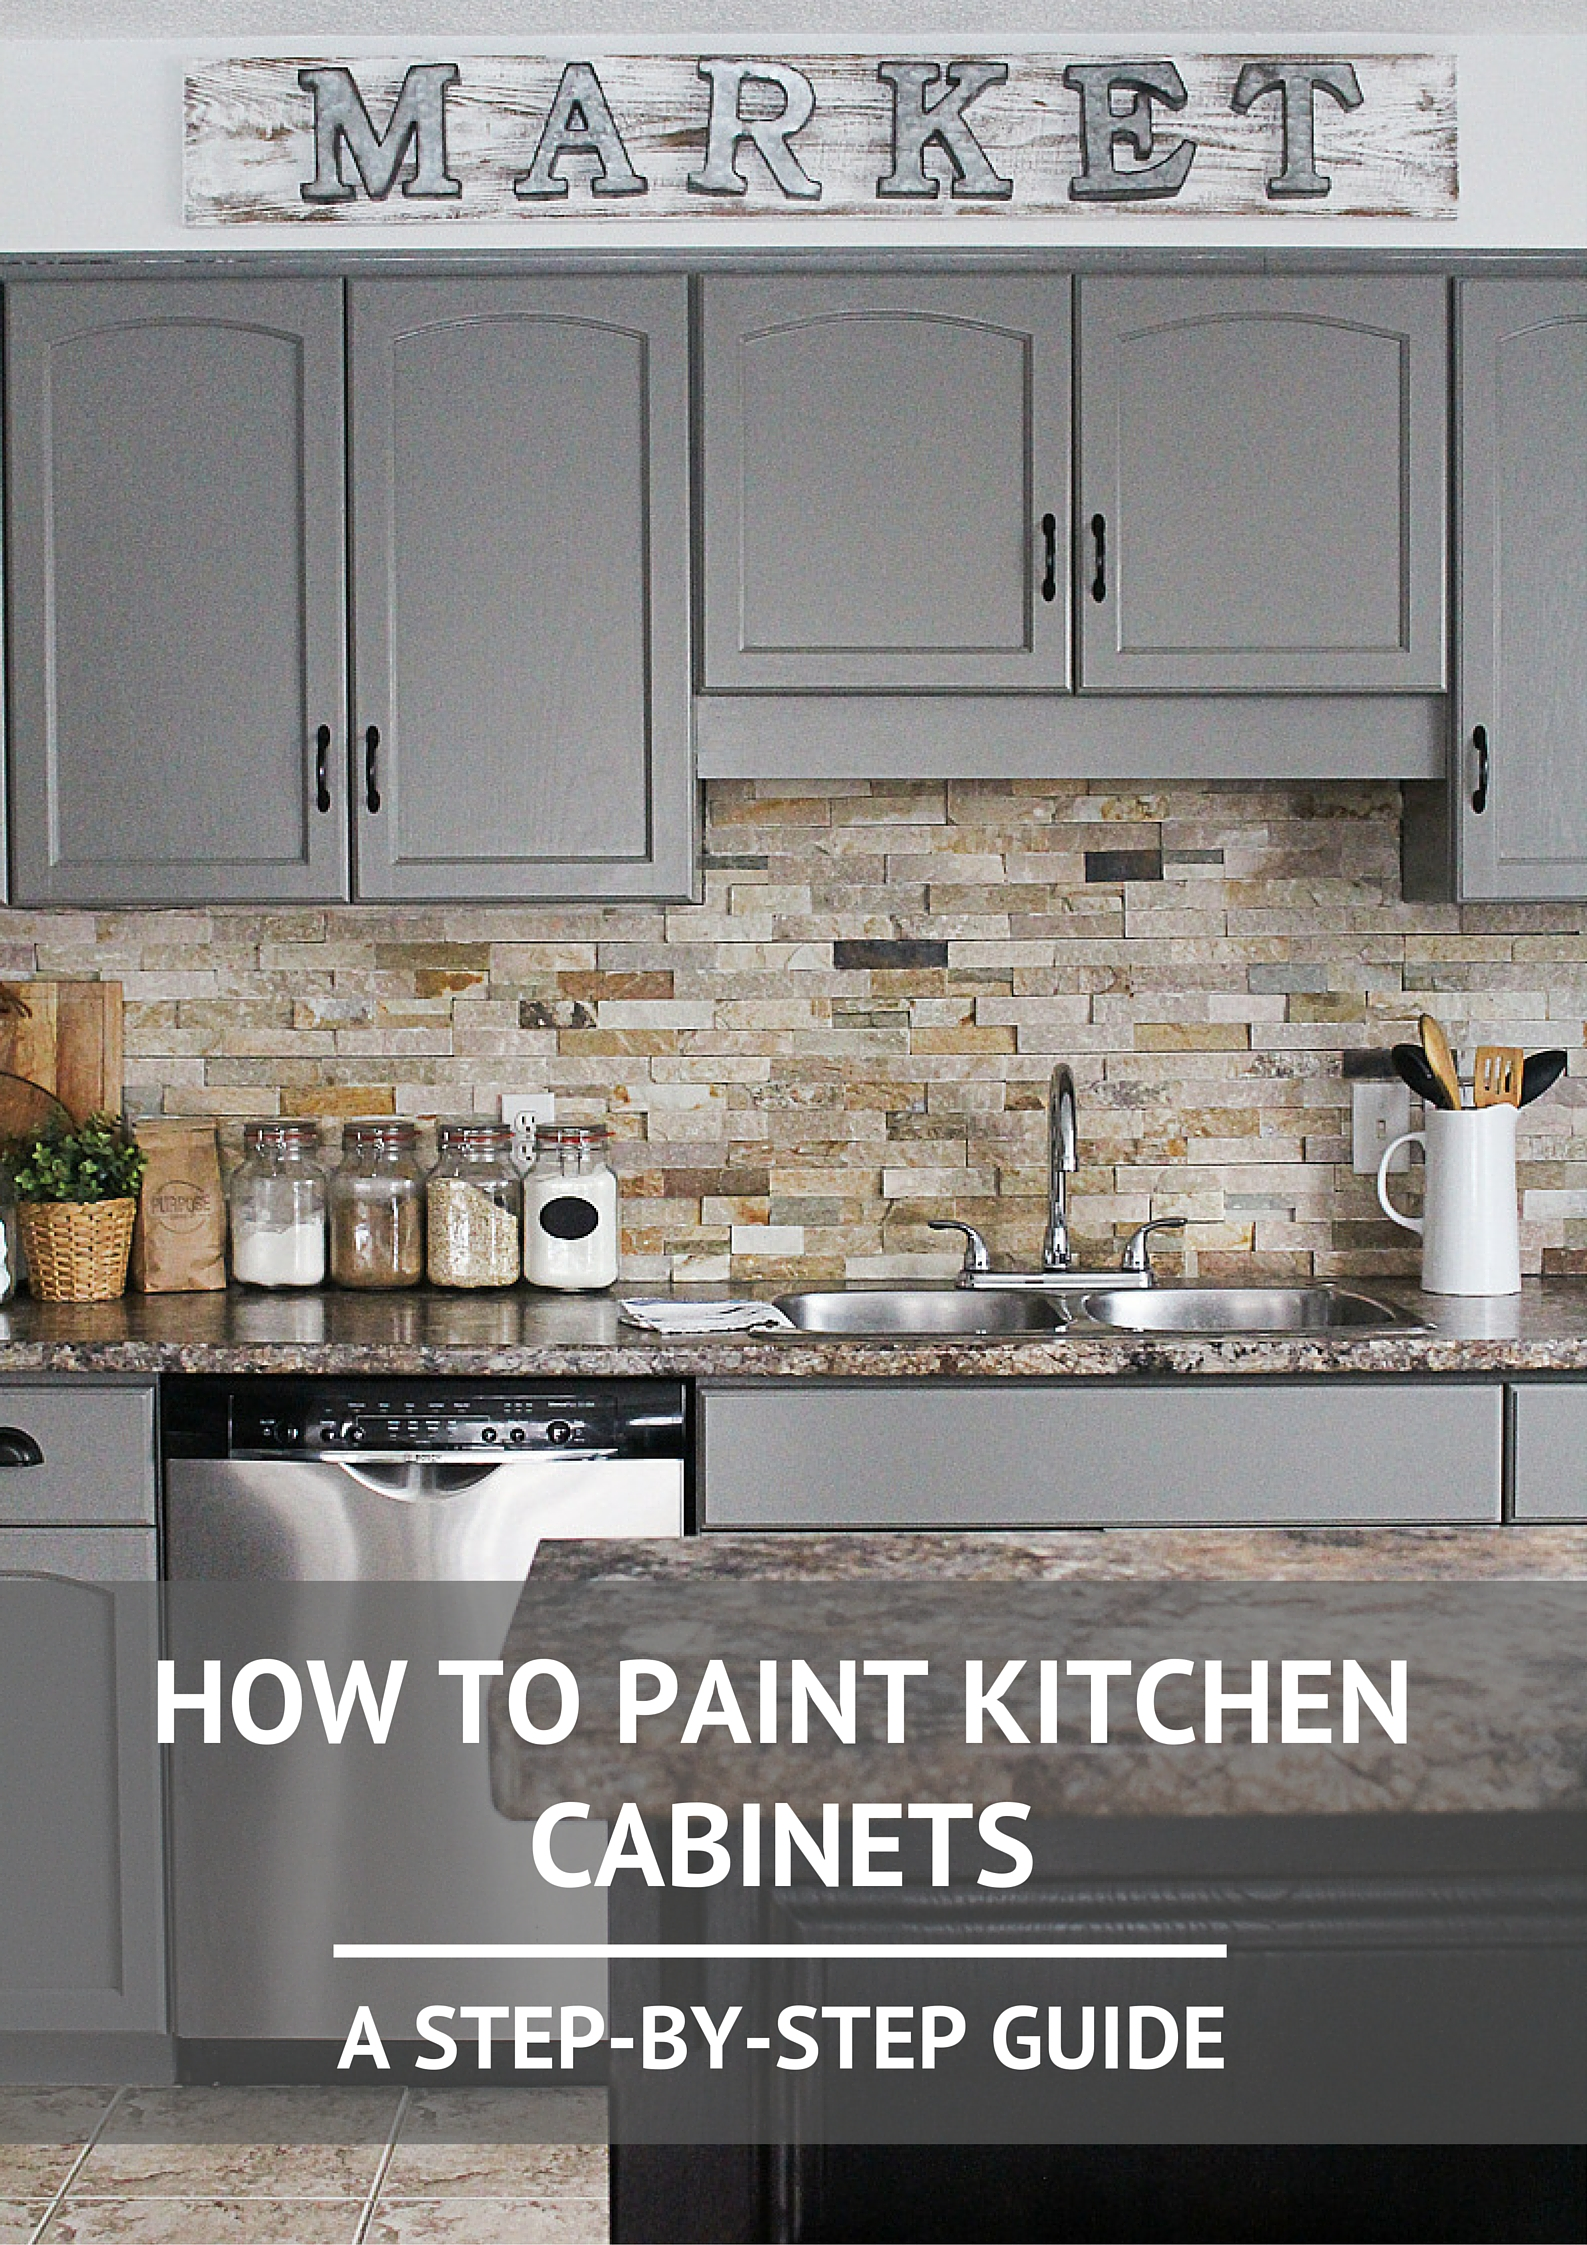 to anyone awesome can paint how your livelovediy tutorial white steps twittertussle of an easy cabinets inspirational in kitchen way cabinet the painting